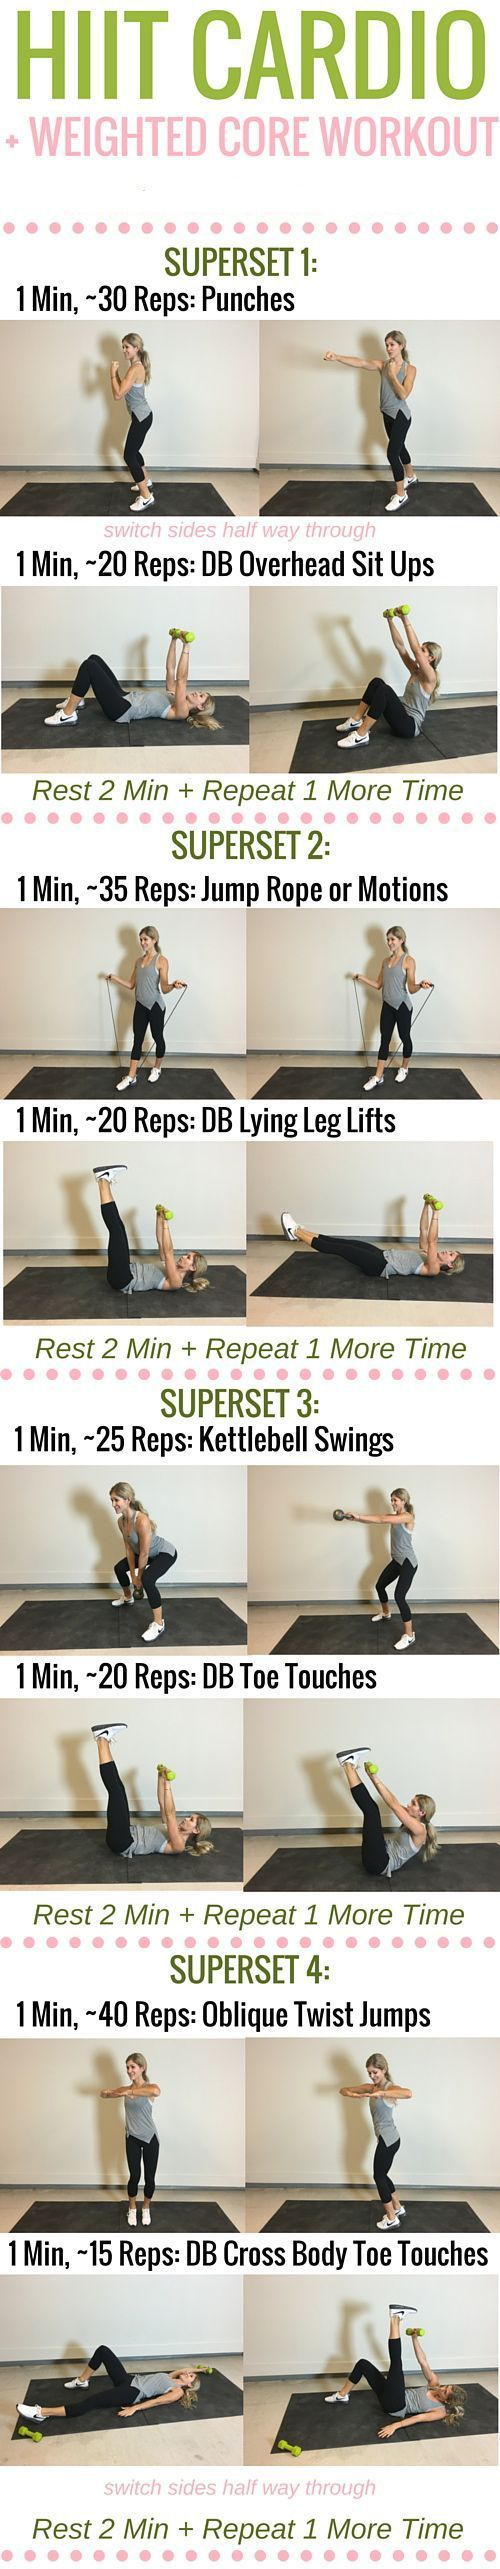 HIIT Cardio | Posted By: AdvancedWeightLossTips.com